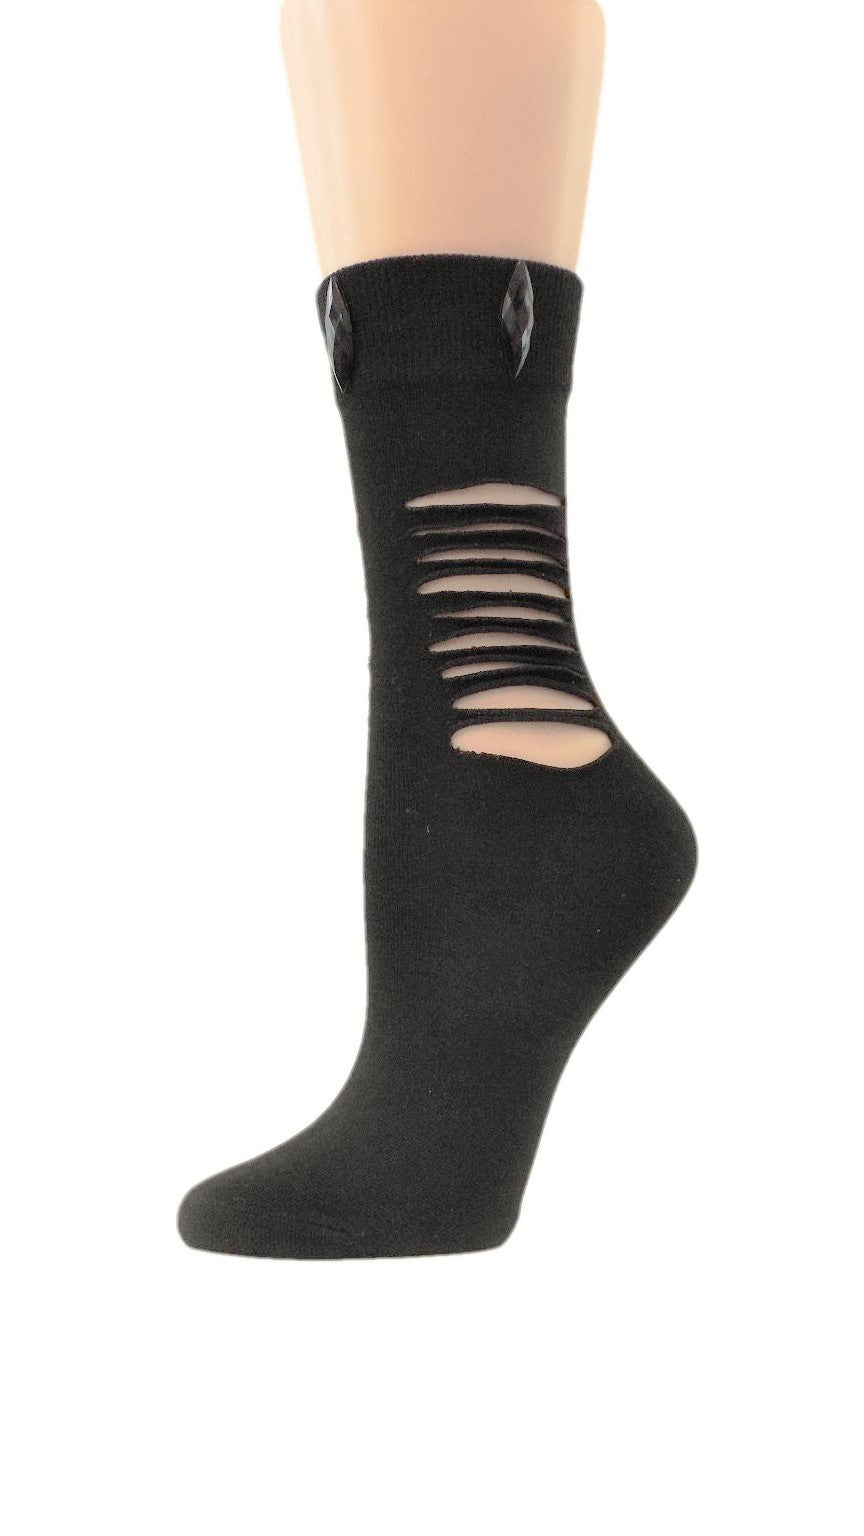 Ripped Midnight Black Custom Fashion Socks with crystal - Global Trendz Fashion®